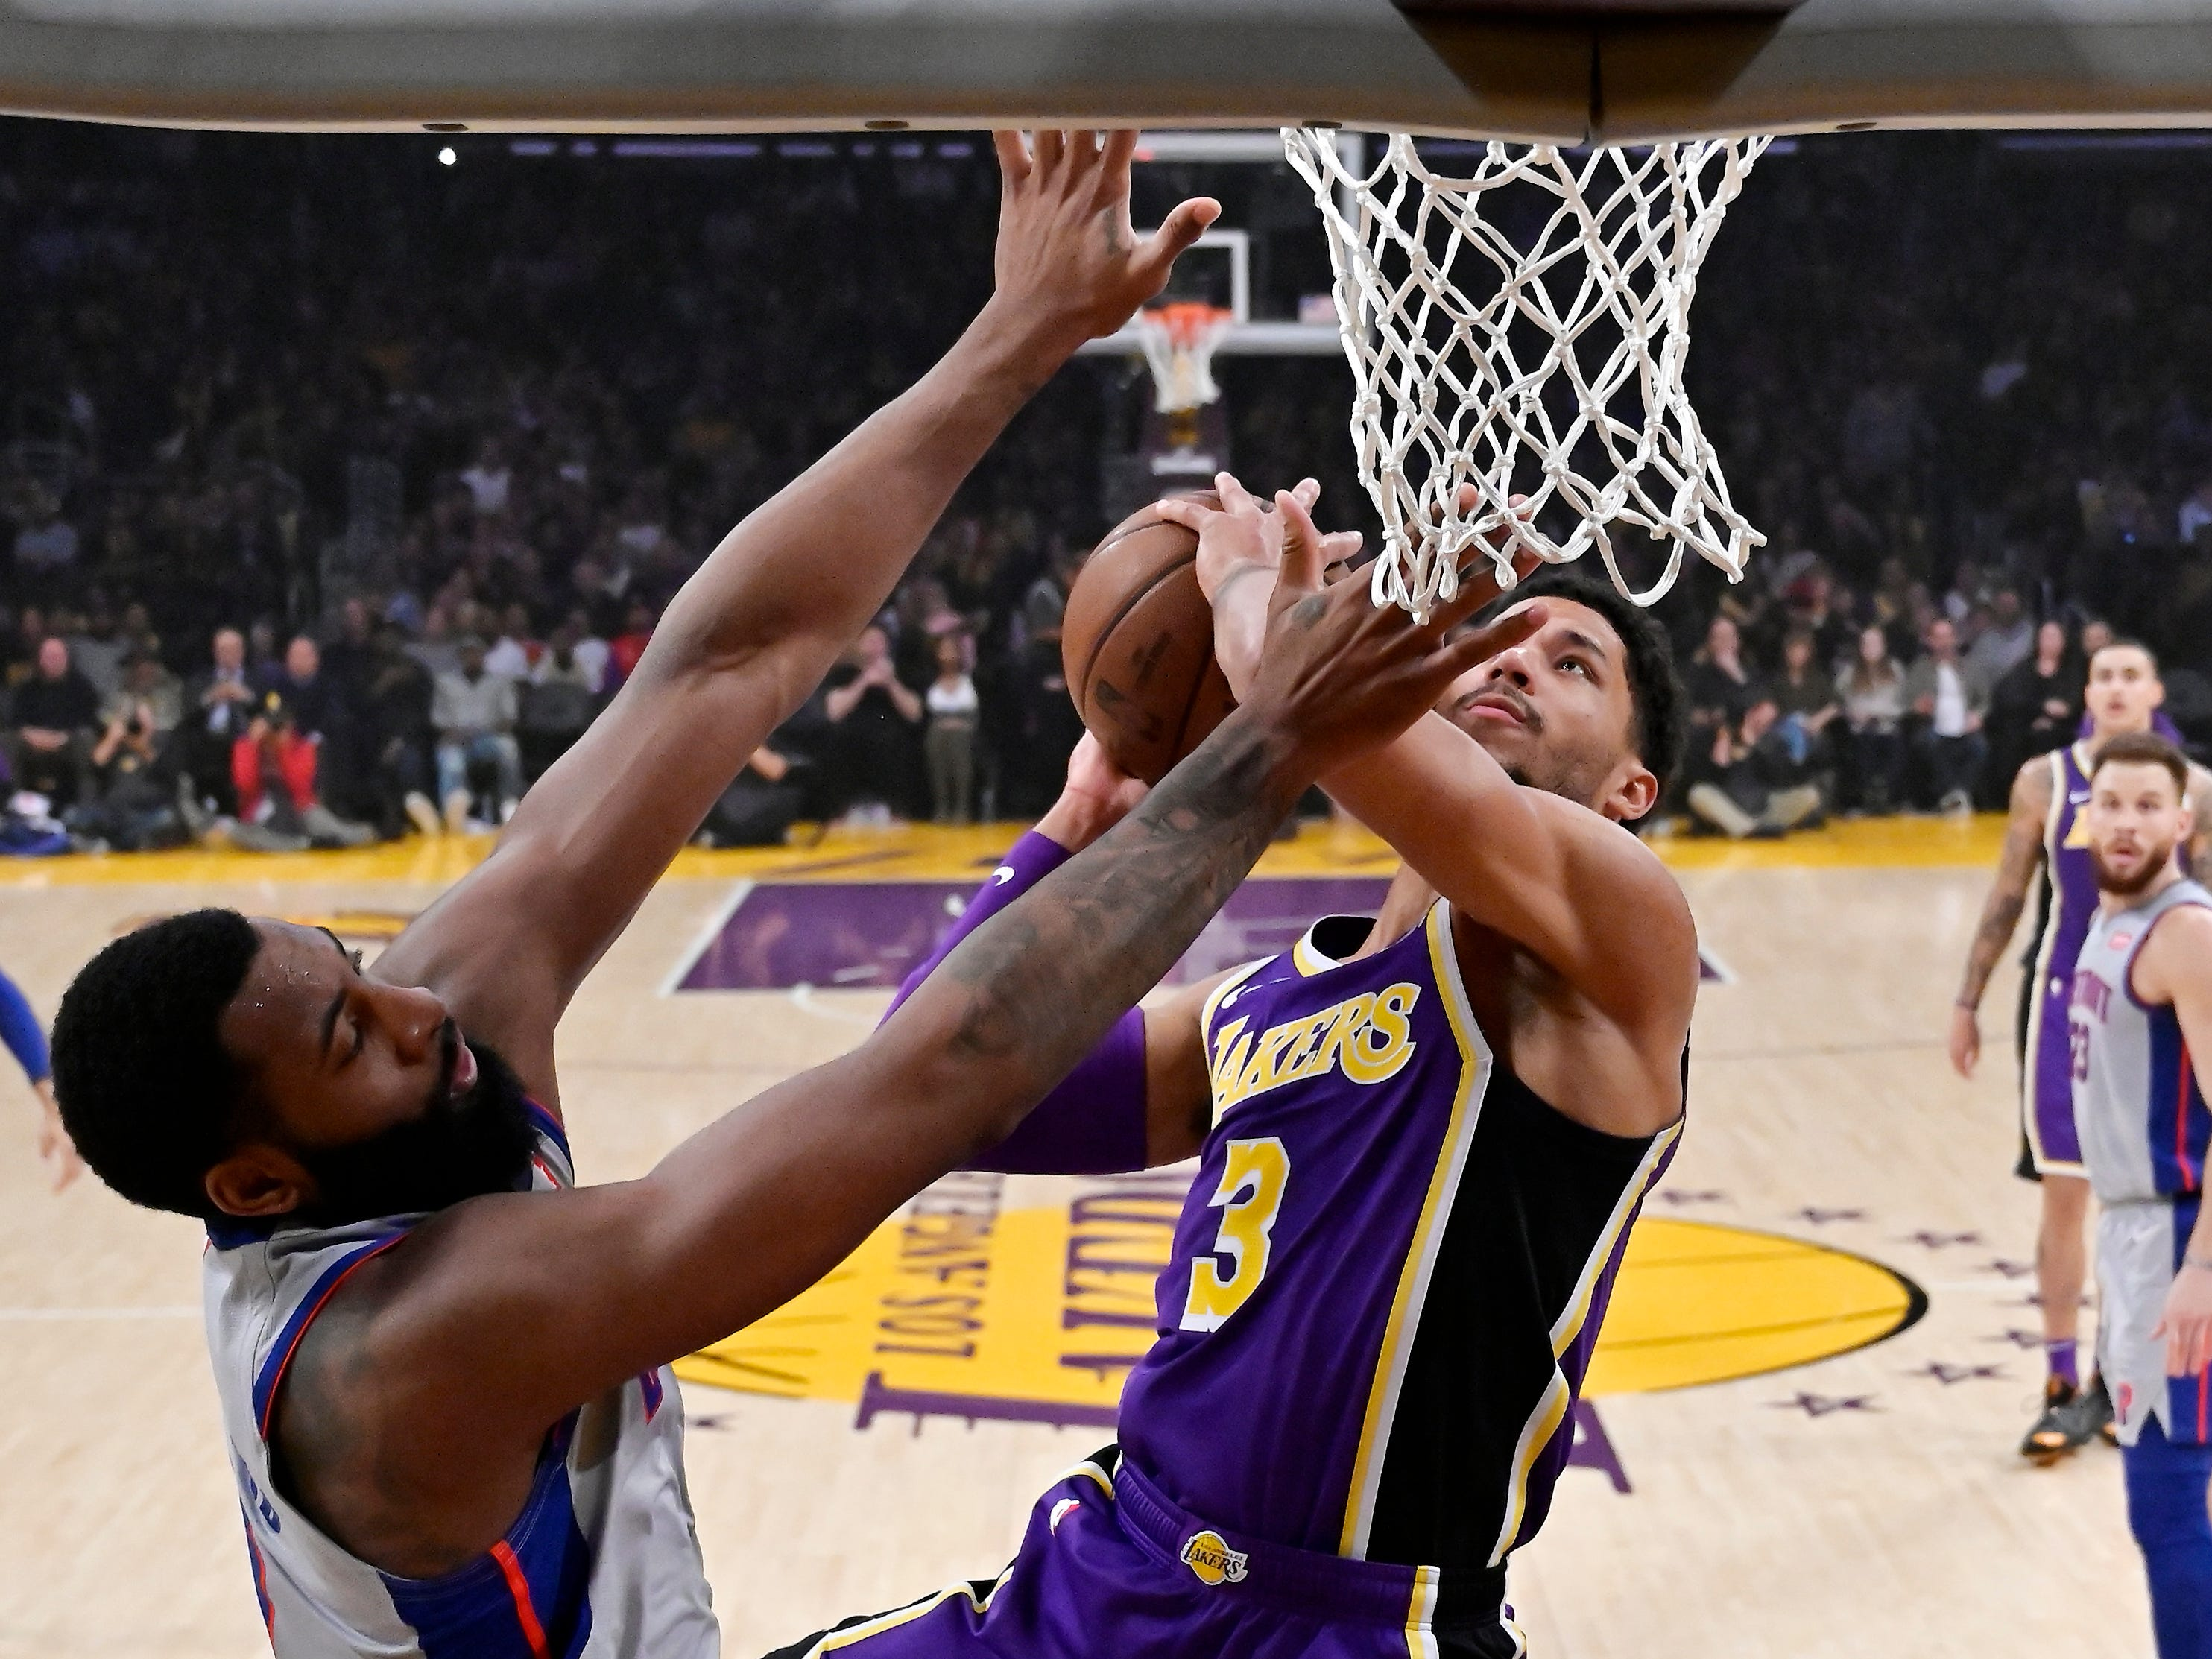 Los Angeles Lakers guard Josh Hart, right, shoots as Detroit Pistons center Andre Drummond defends during the first half of an NBA basketball game Wednesday, Jan. 9, 2019, in Los Angeles.